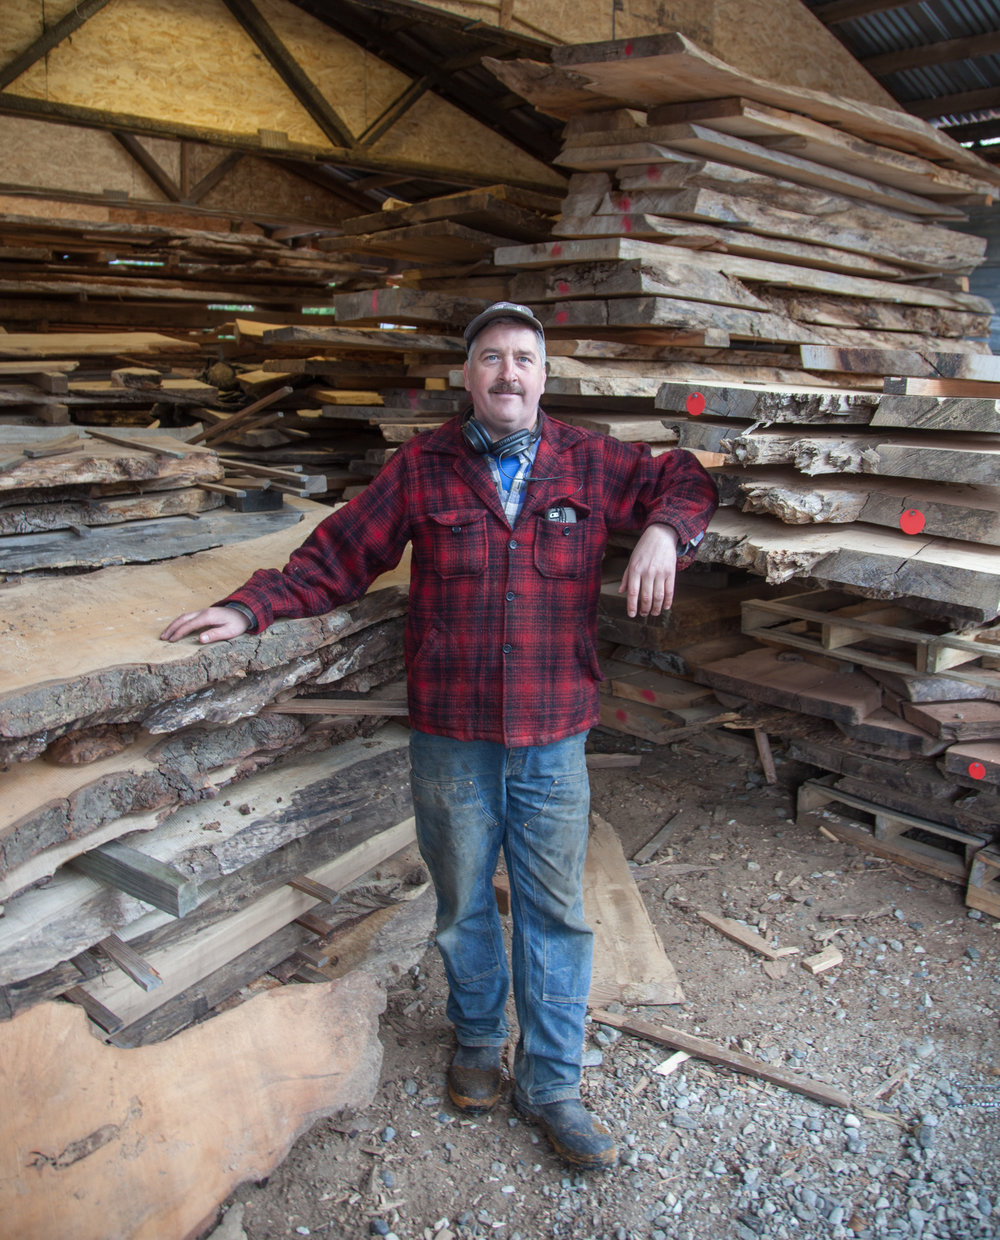 Bruce Blacker, Owner of Wild Edge Woods.